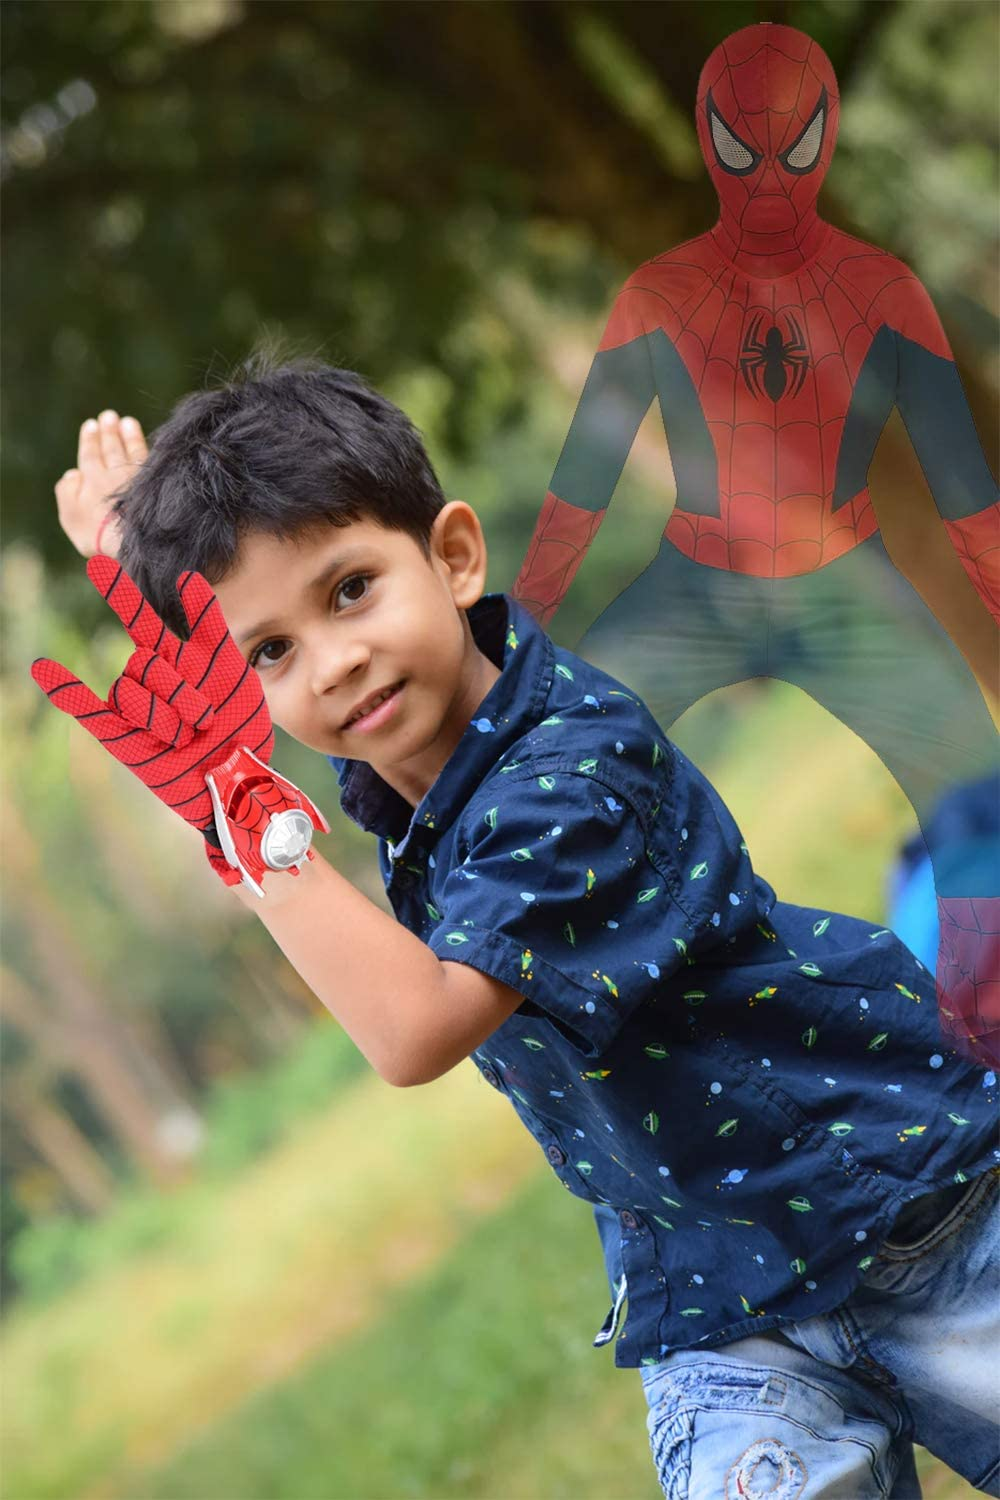 The Season Toys Kids Superhero Magic Gloves with Wrist Ejection Launcher Mr America